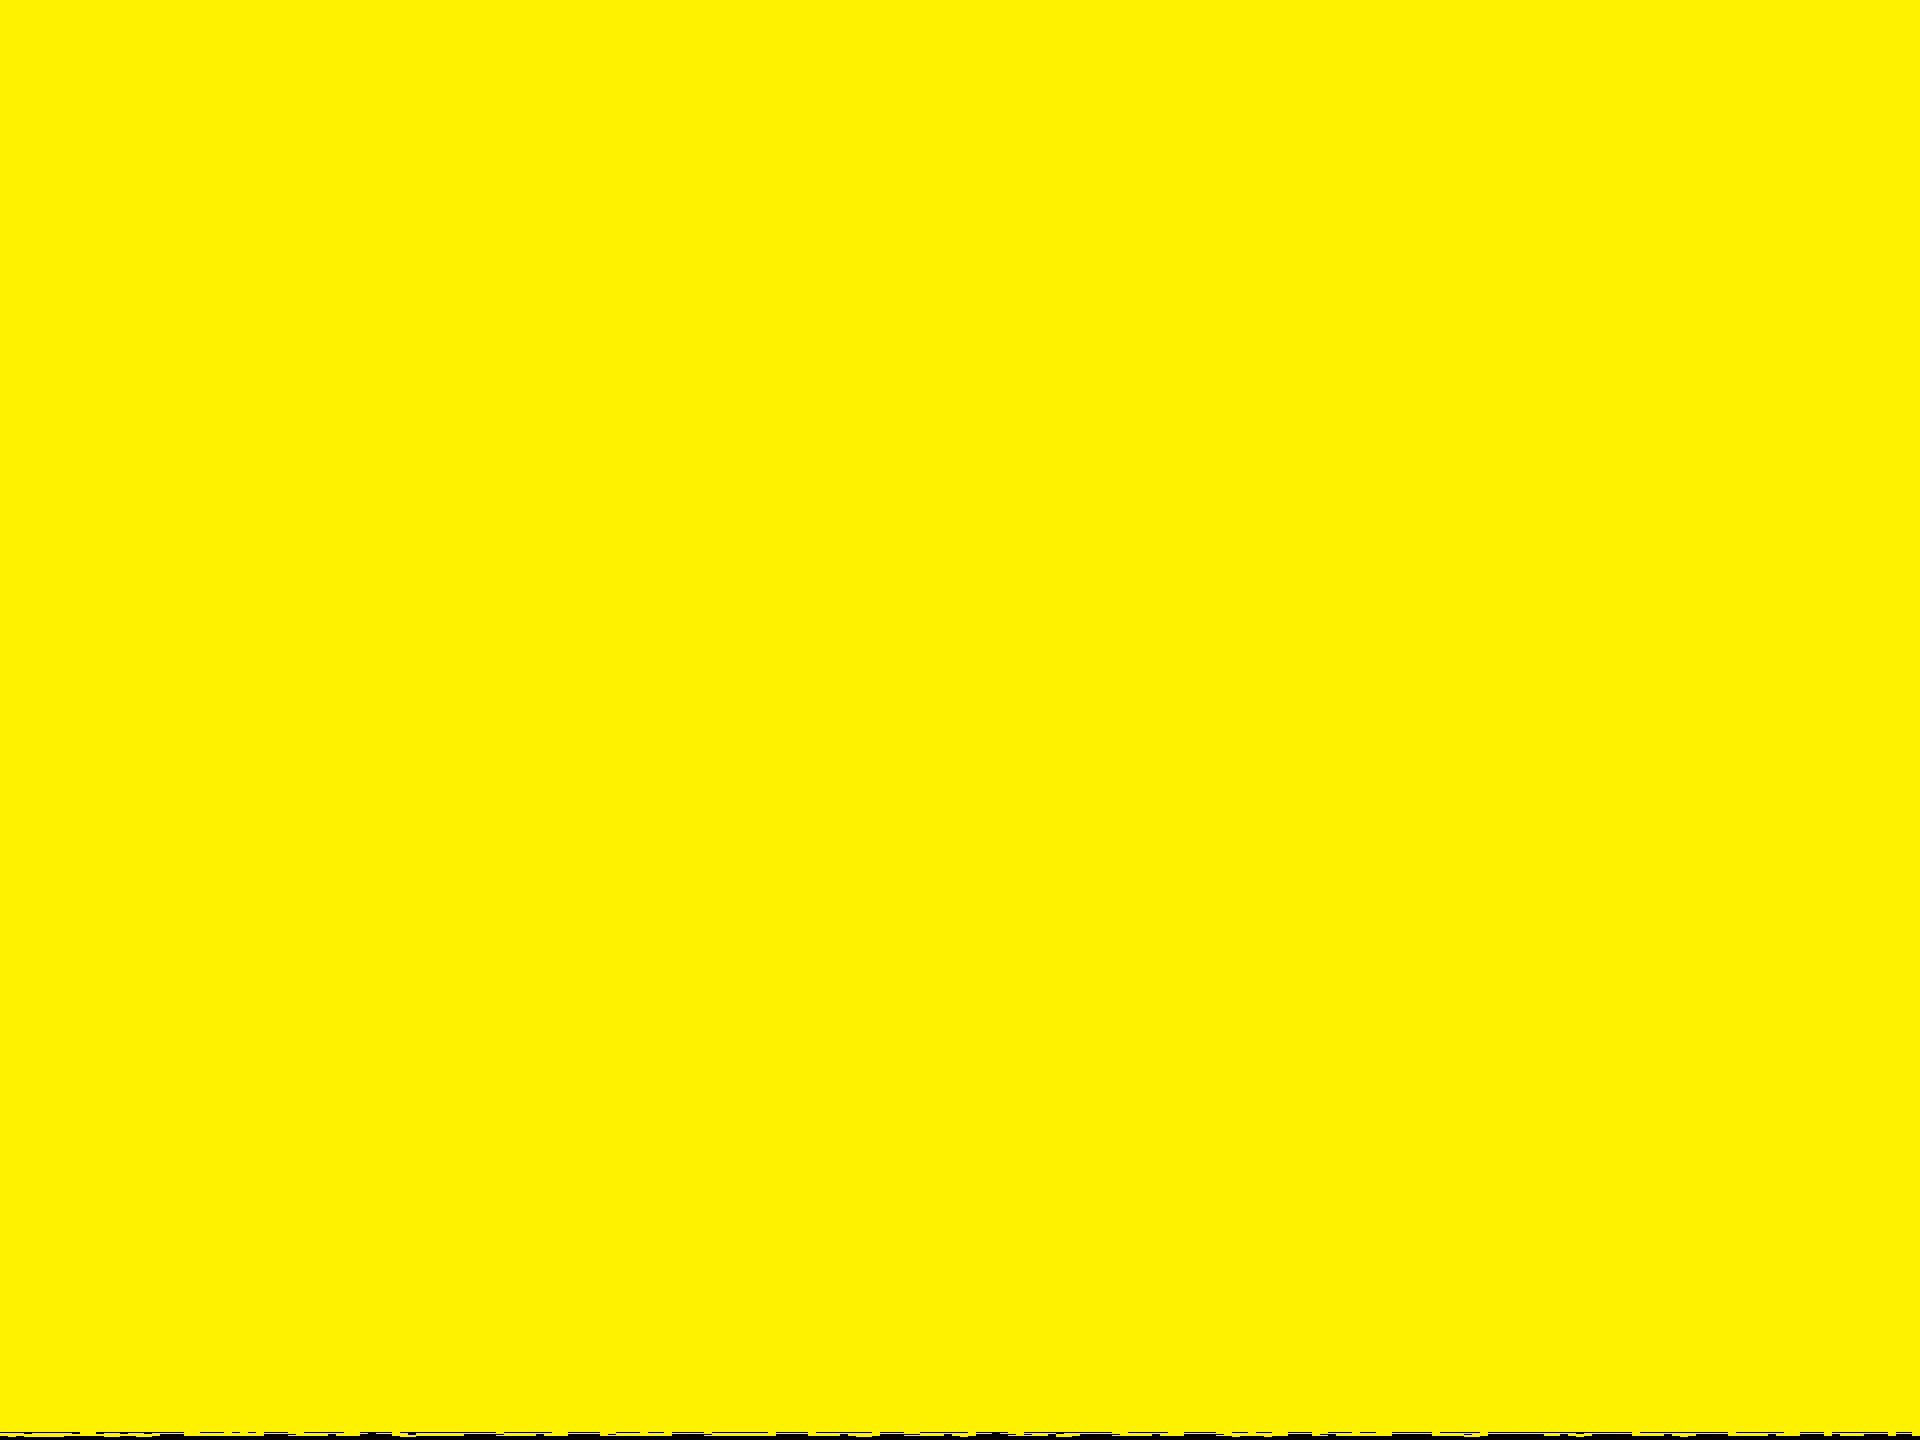 X Solid Yellow Background Free Stock Photo Hd Public Domain Pictures